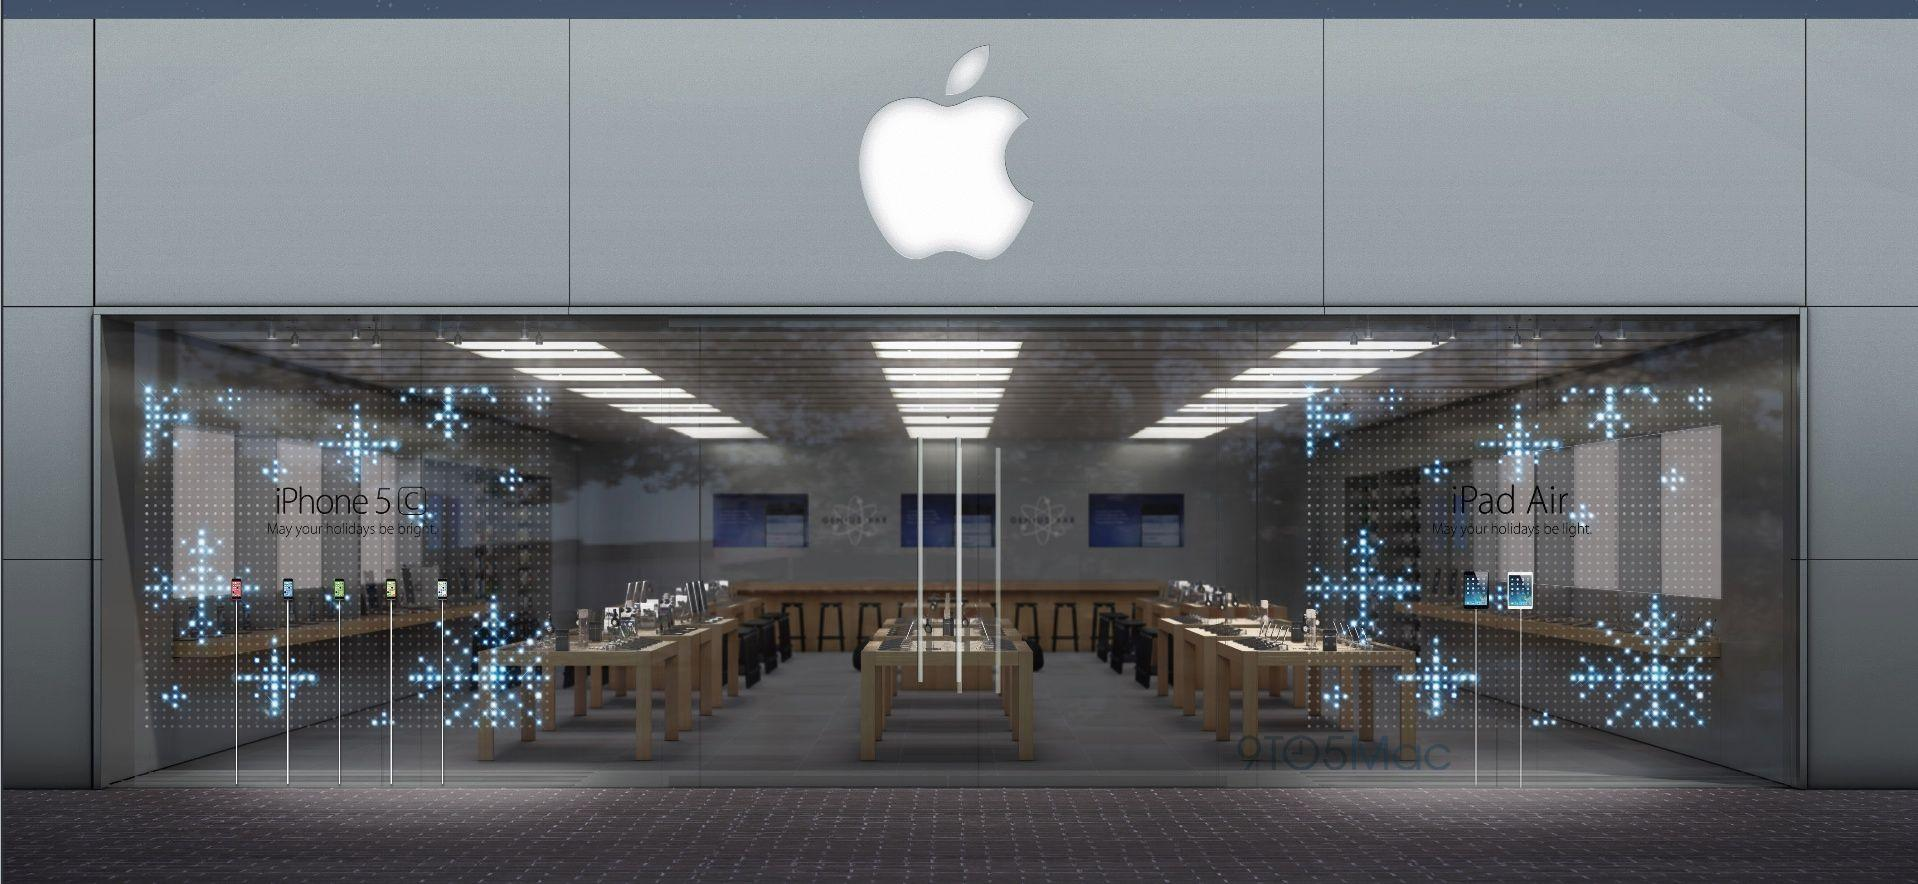 24+ Best HD Apple Store Wallpapers